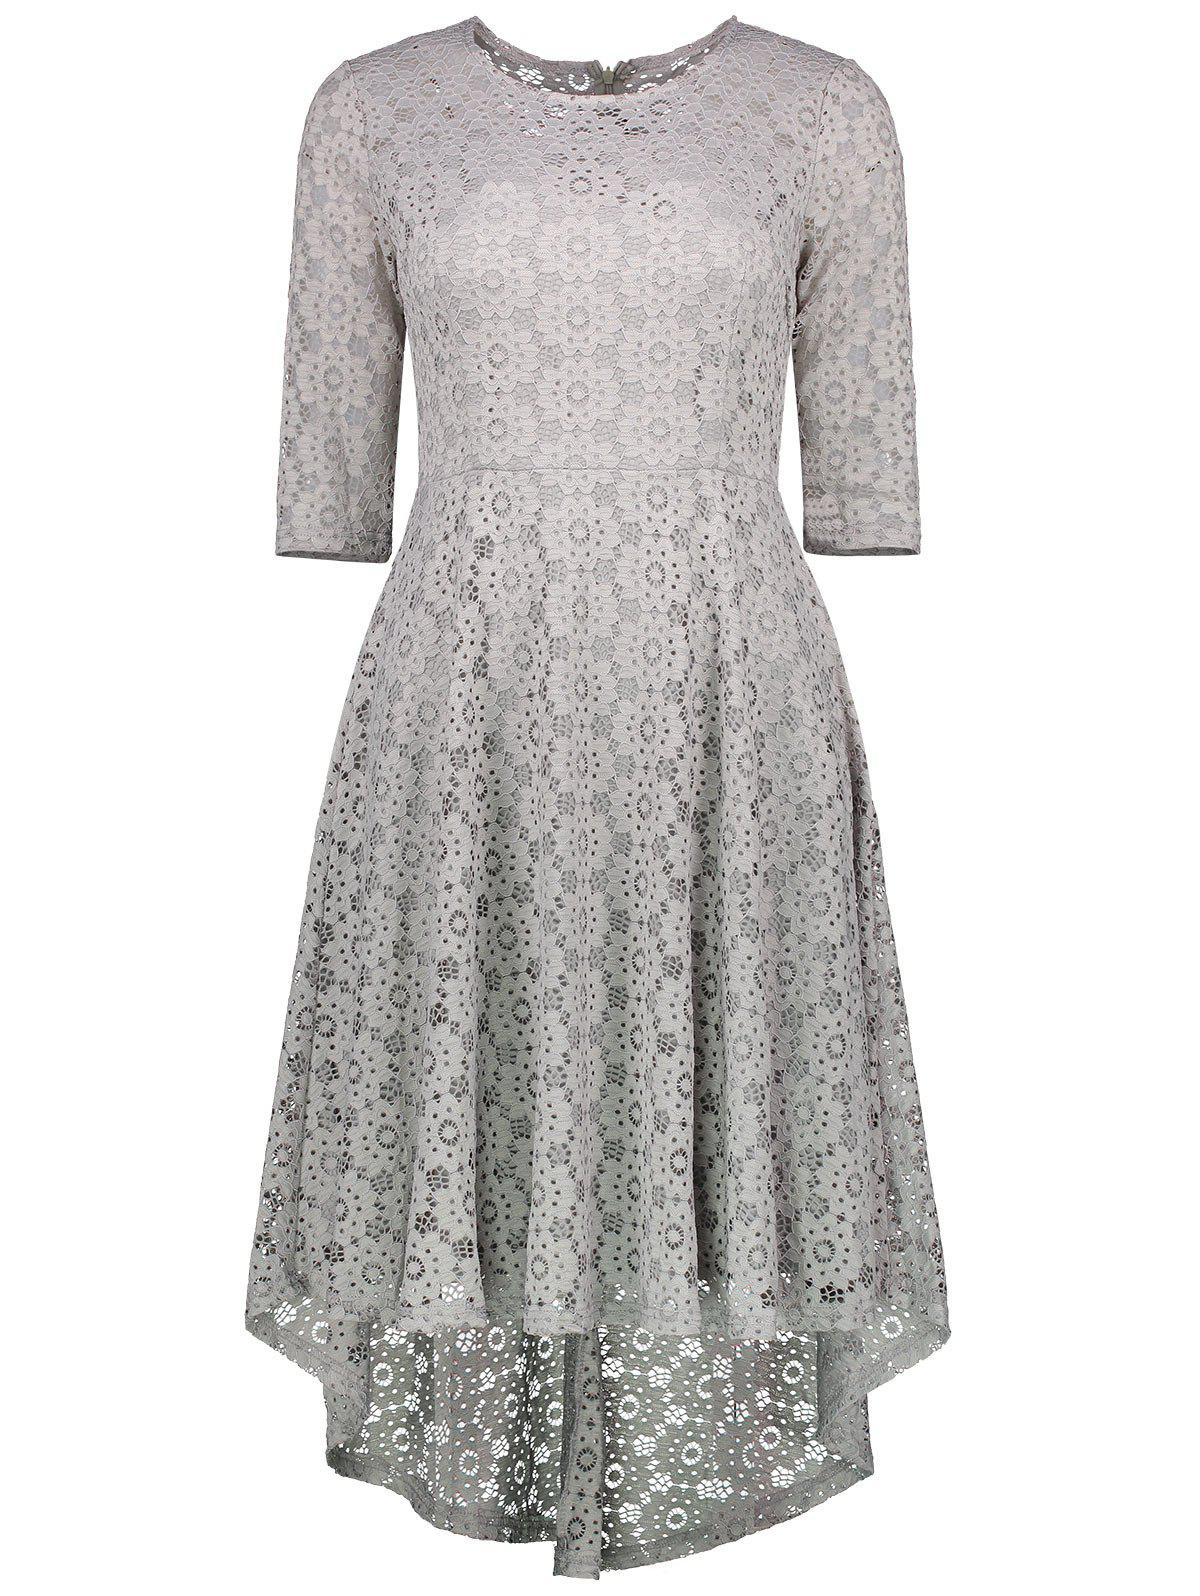 Lace Crochet High Low Midi A Line Dress - GRAY M